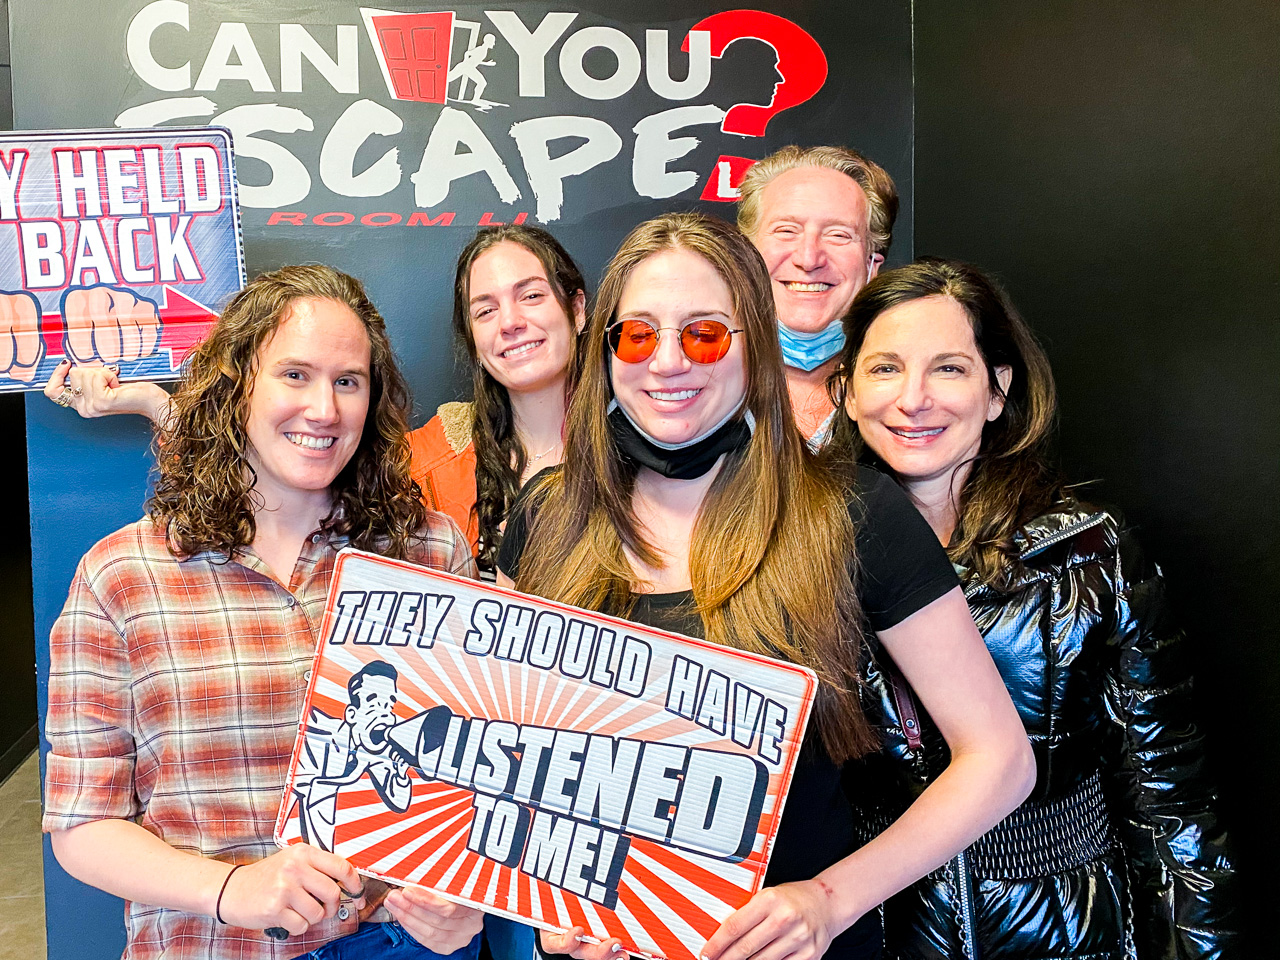 A family of 5 stand by each other inside of an Escape Room and hold up a sign